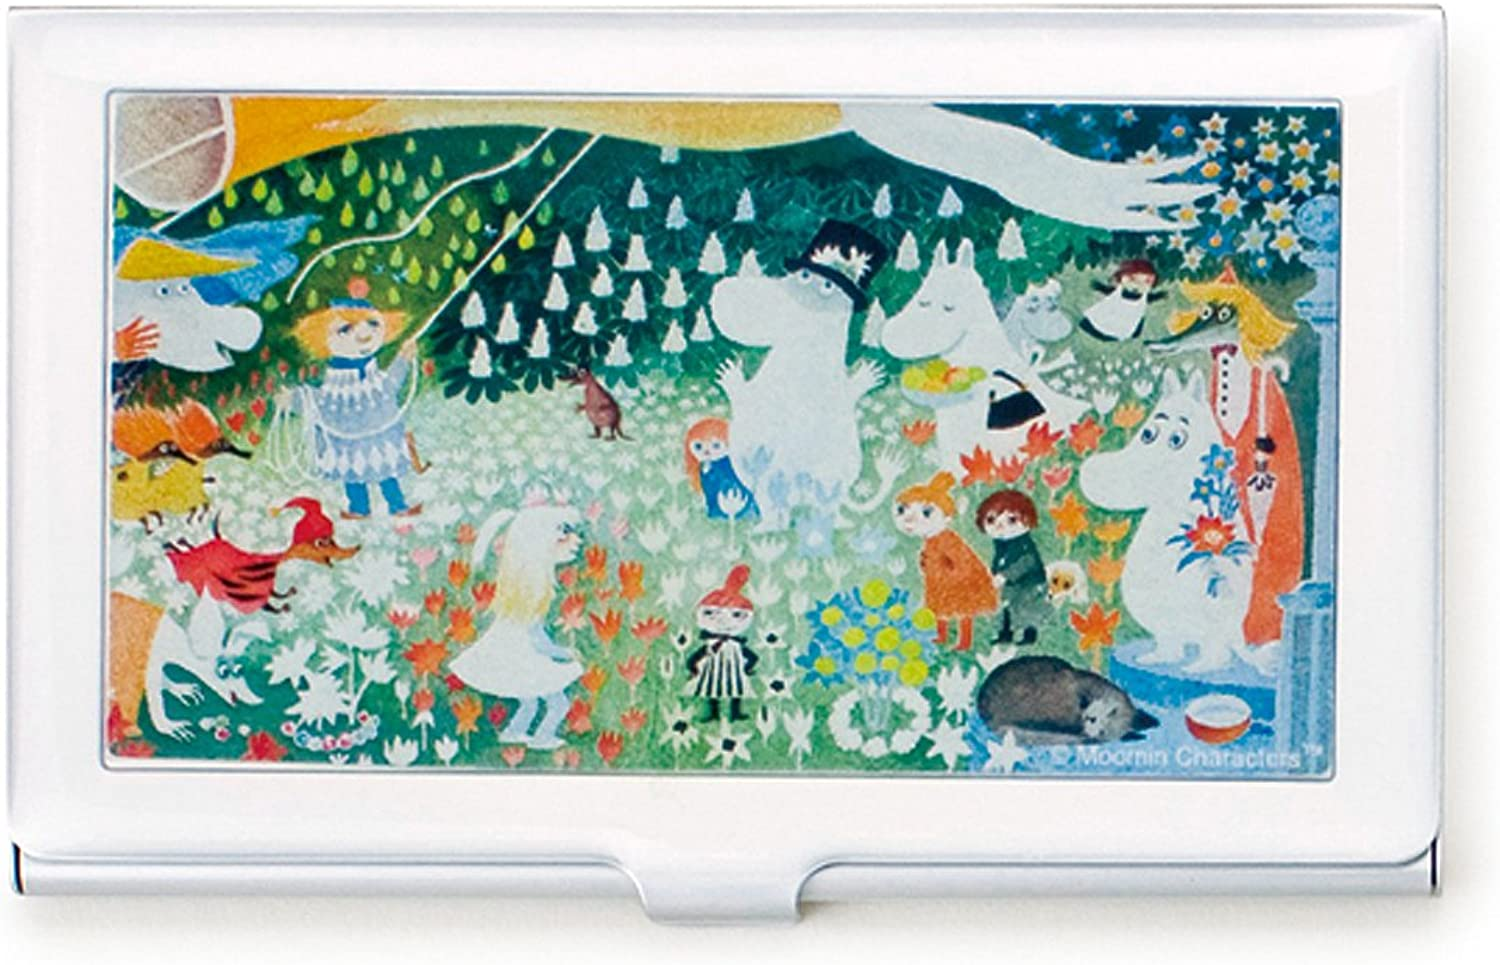 Moomin card case moominvalley (japan import)